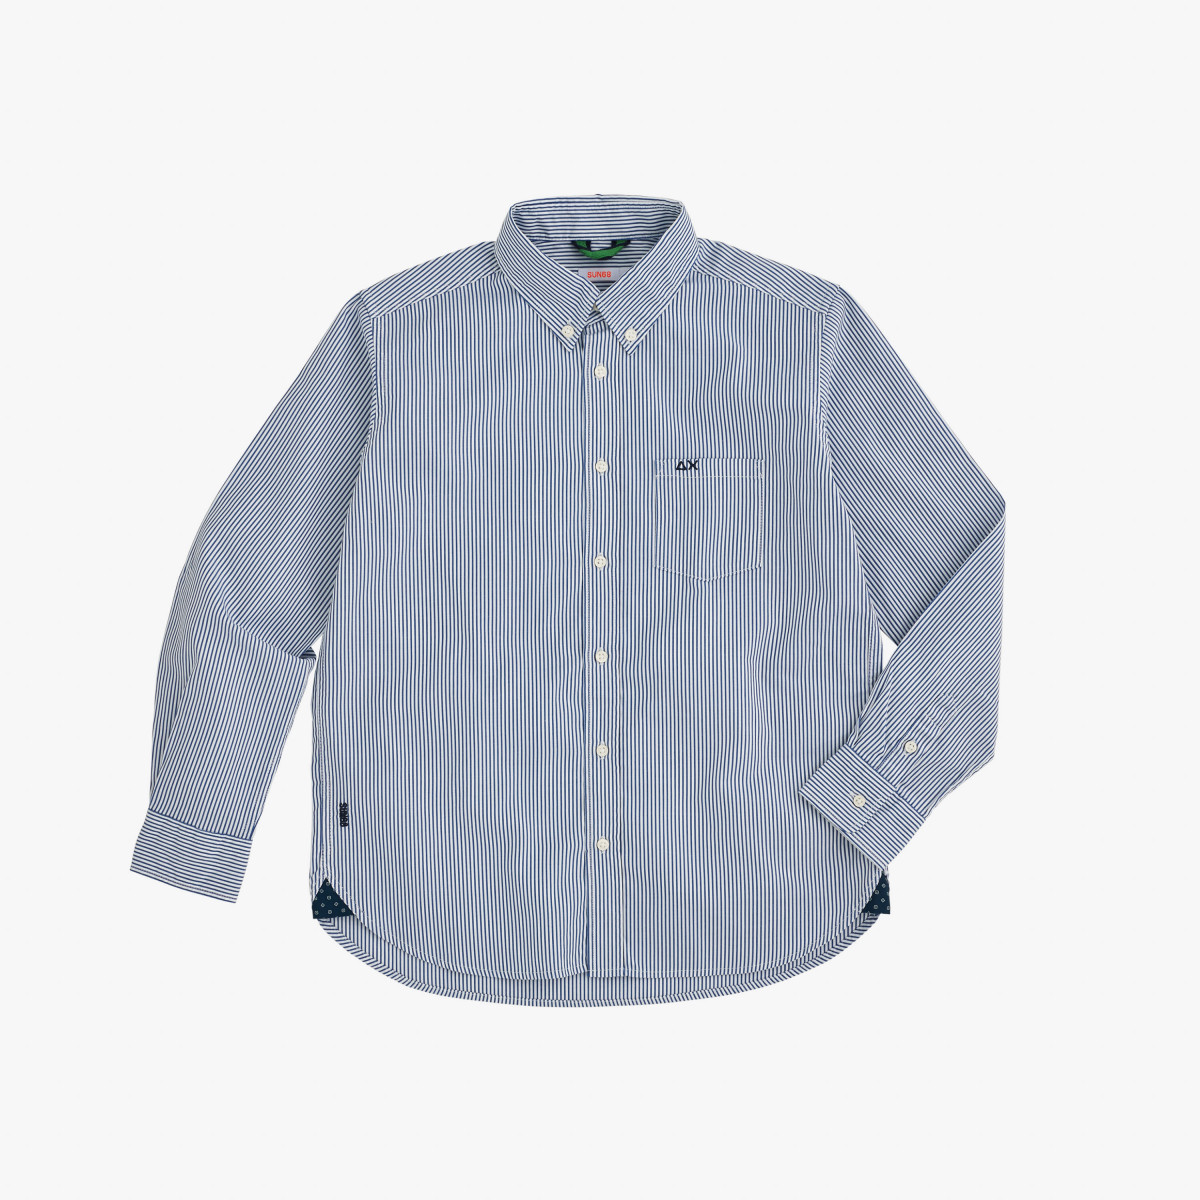 BOY'S SHIRT DETAILS B/D L/S NAVY BLUE/WHITE